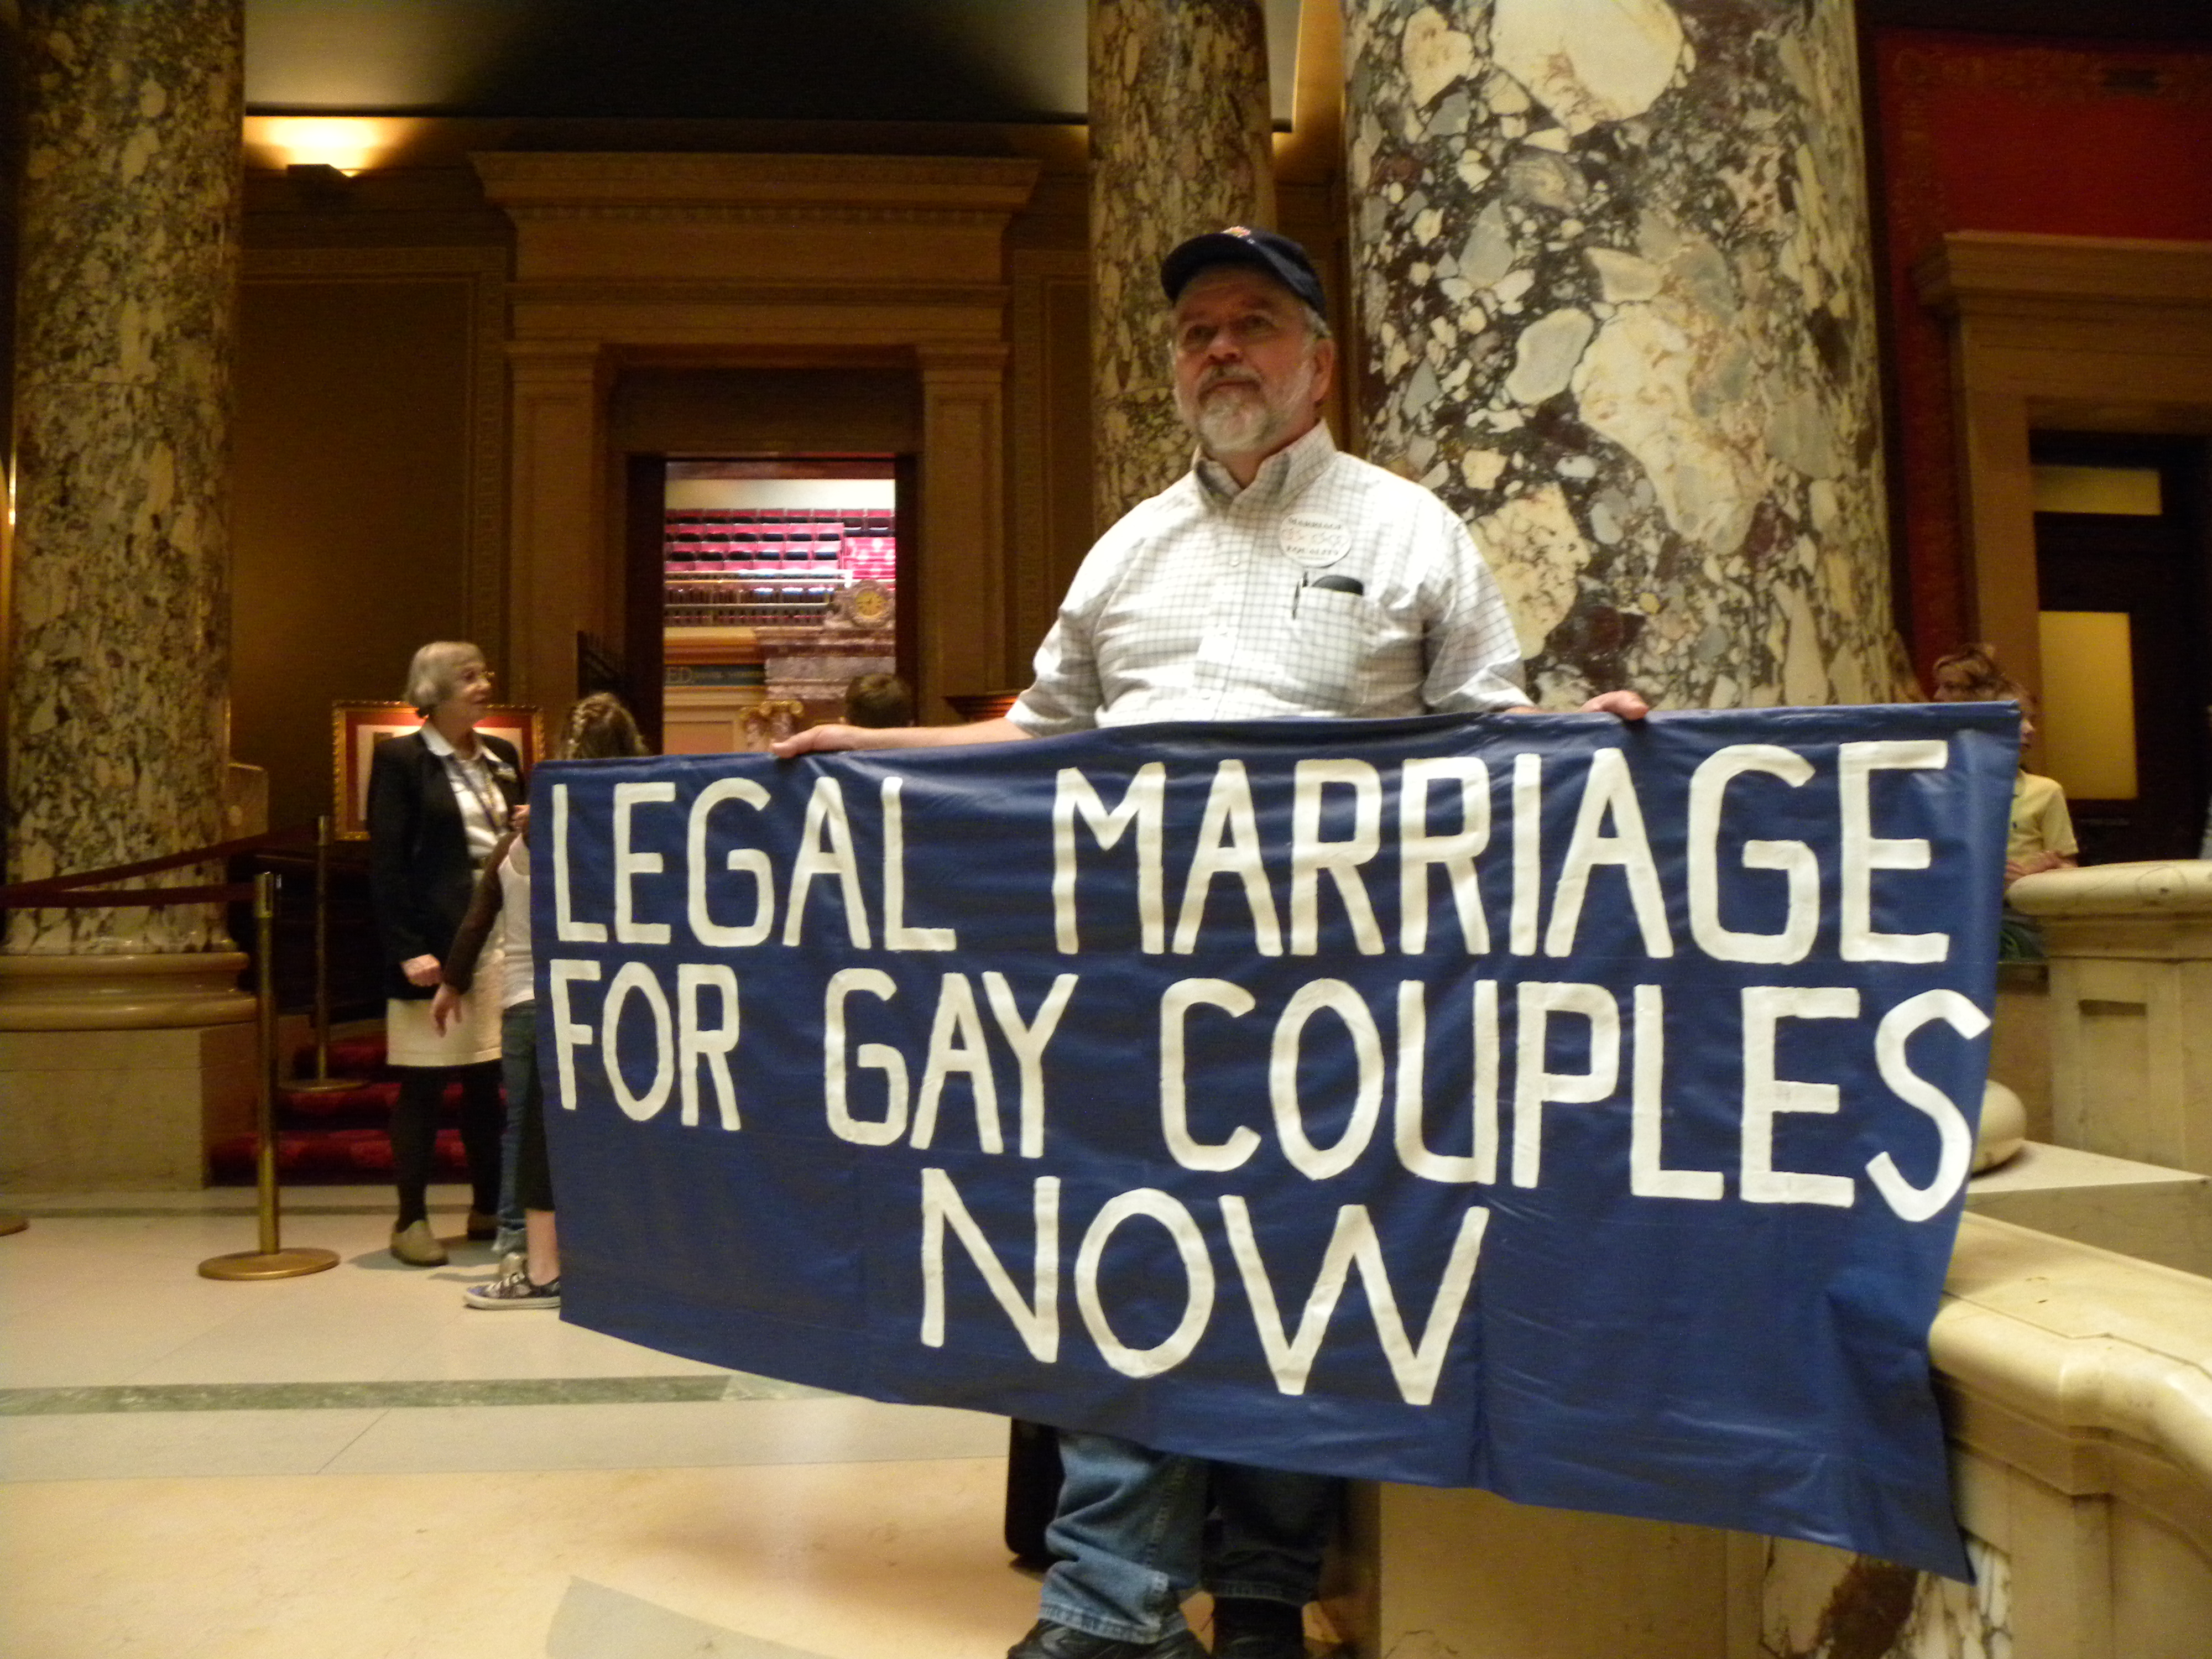 thesis against gay marriage Thesis statements: granting legal marriage rights to gays and lesbians would threaten the stability of the family five arguments against gay marriage.